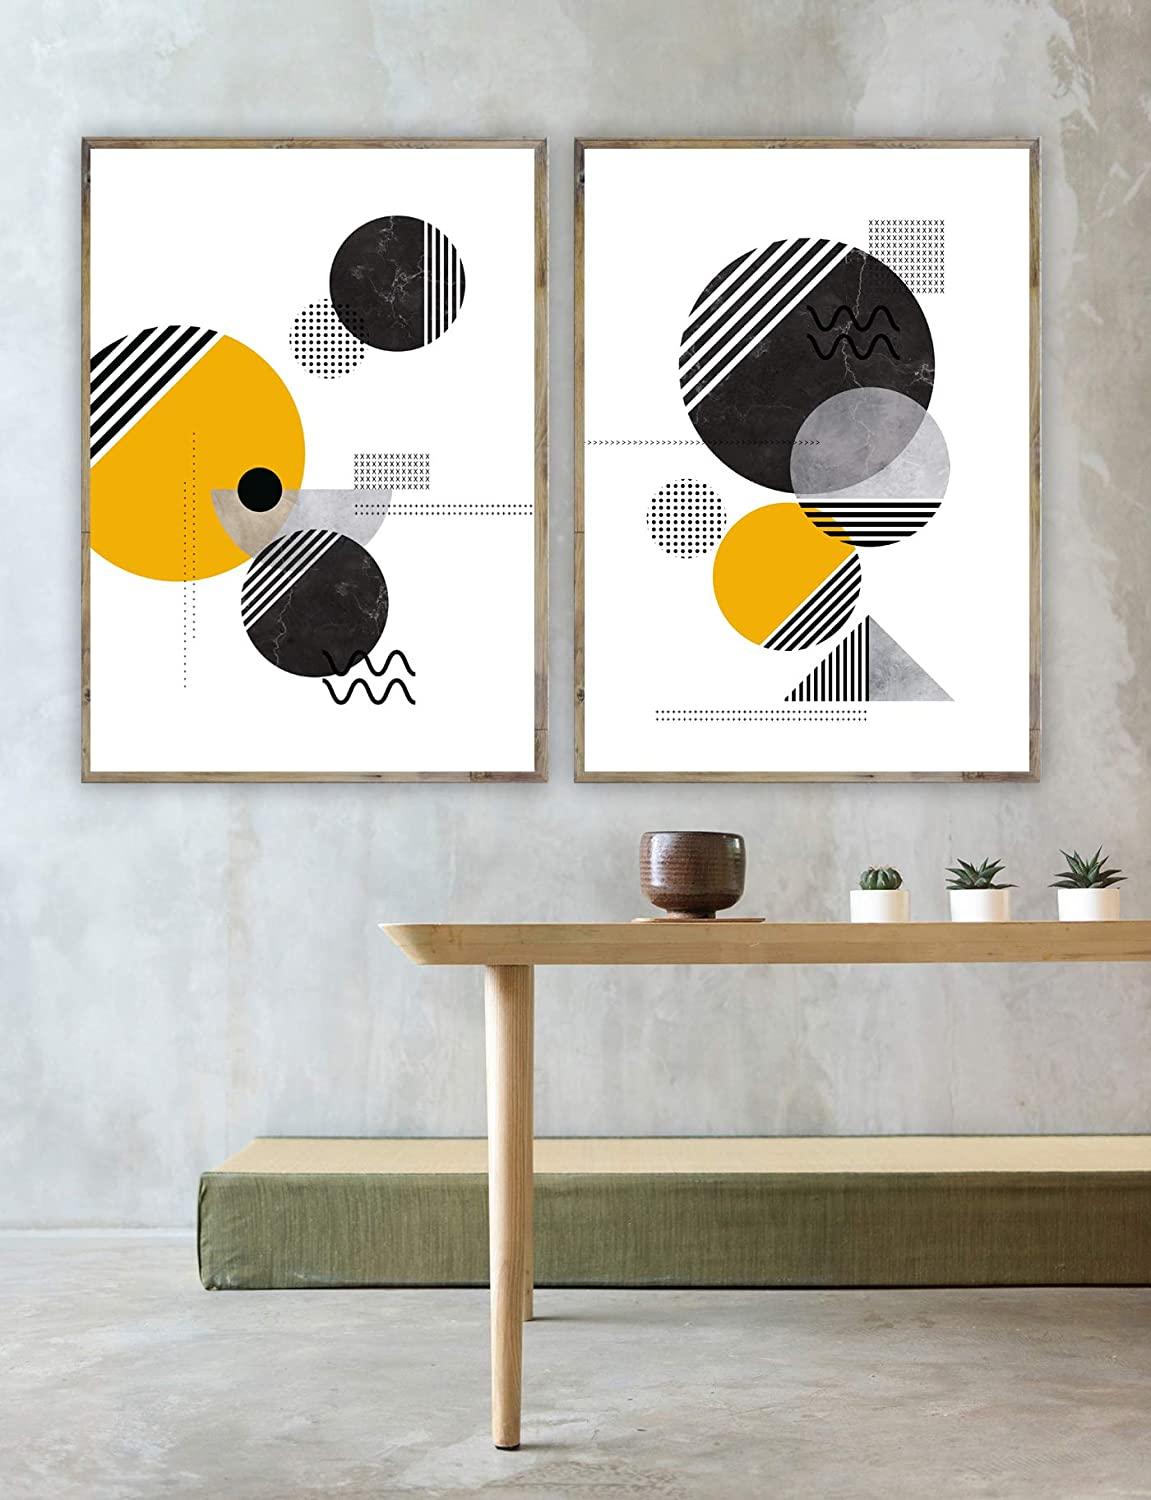 Abstract poster printing set 2 poster diptych yellow and black textured print geometric wall art abstract art modern scandinavian print